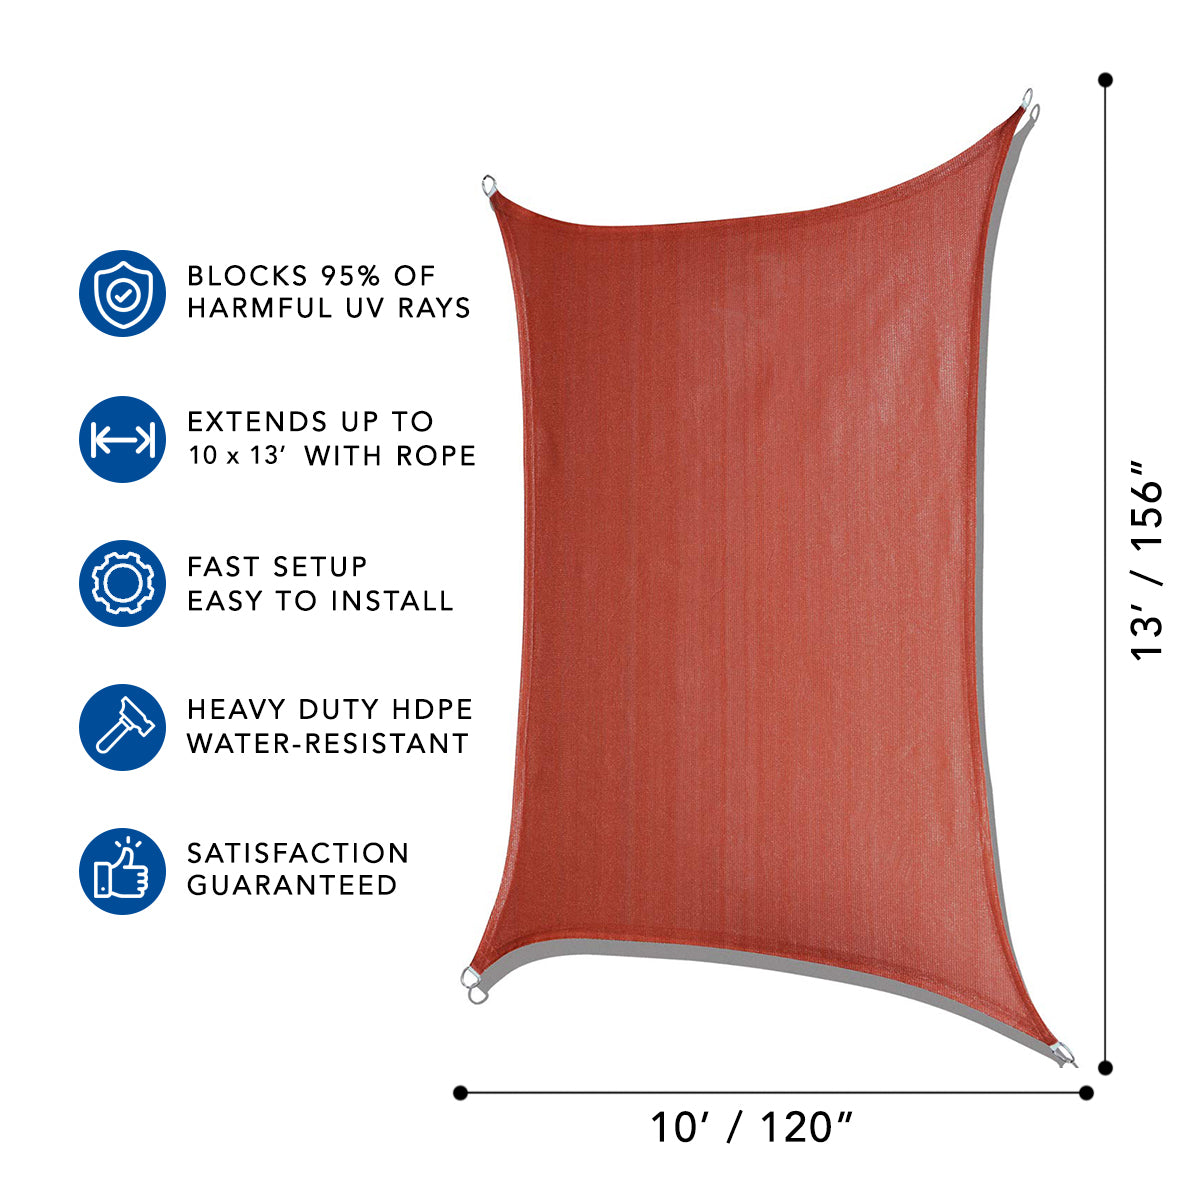 Sun Shade Sail for UV Ray Protection - Rectangle with Hardware Kit